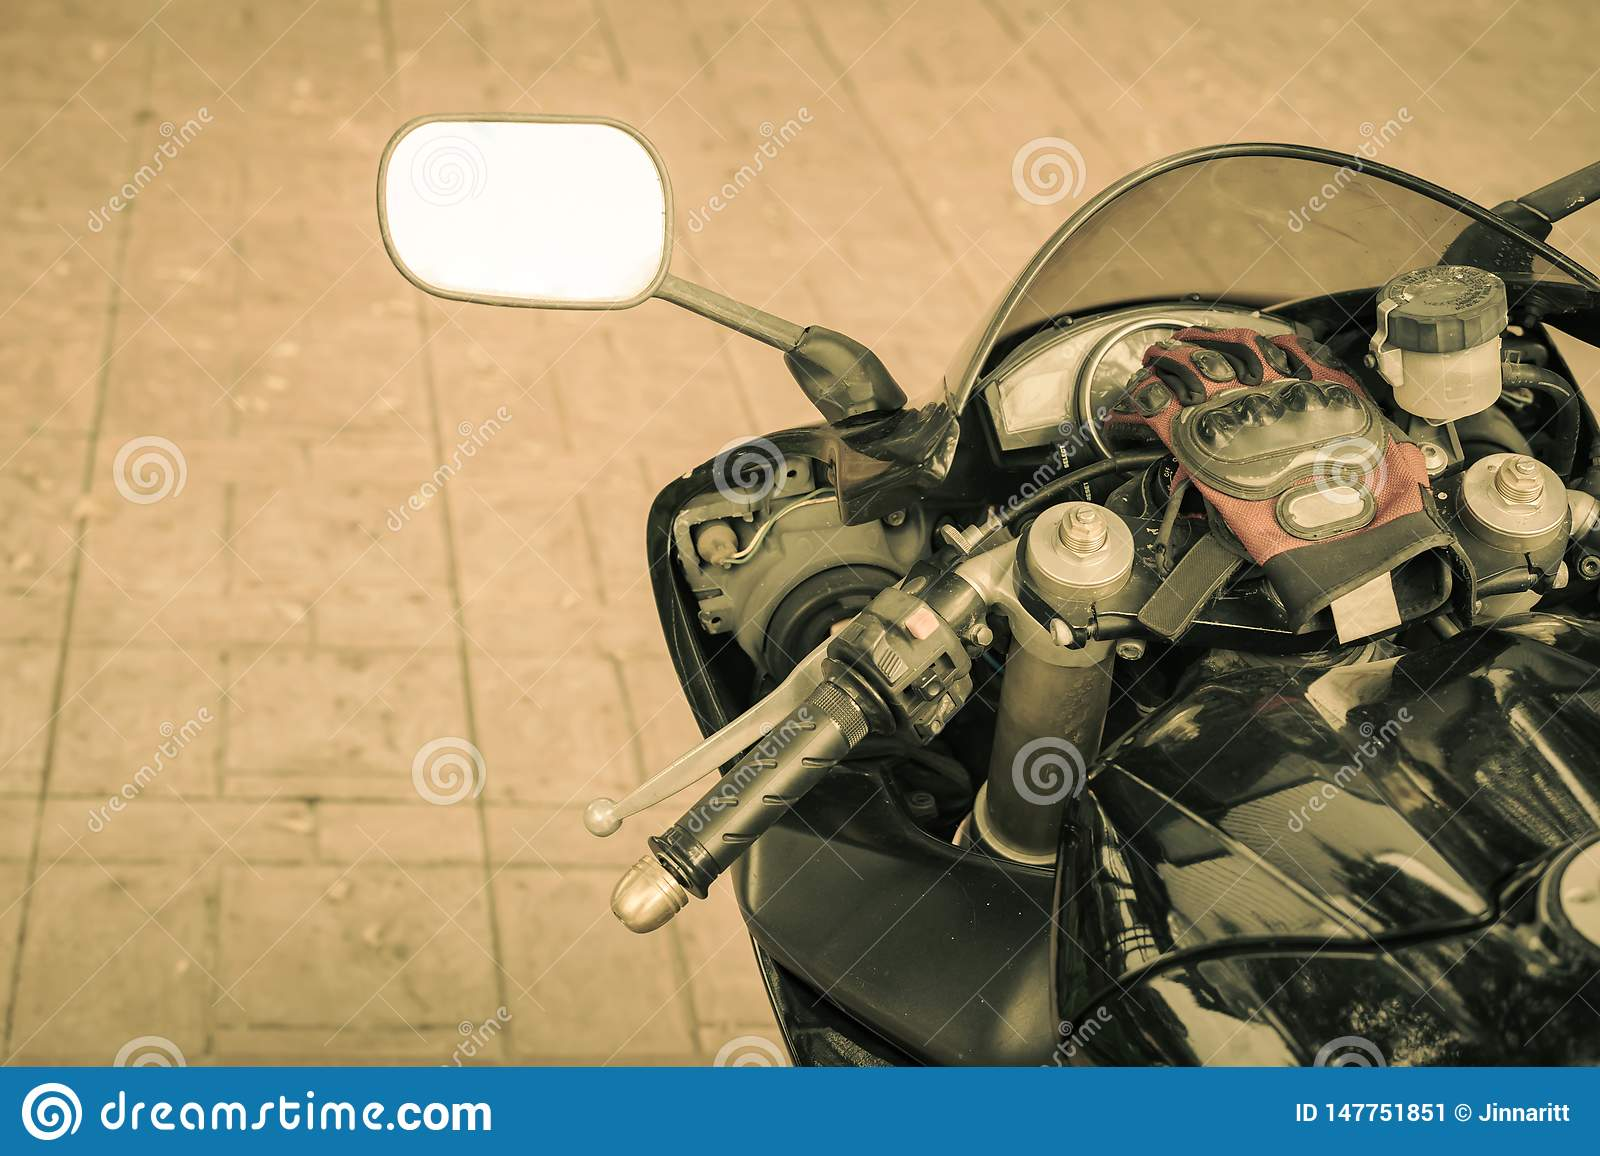 A sporty motorcycle parked